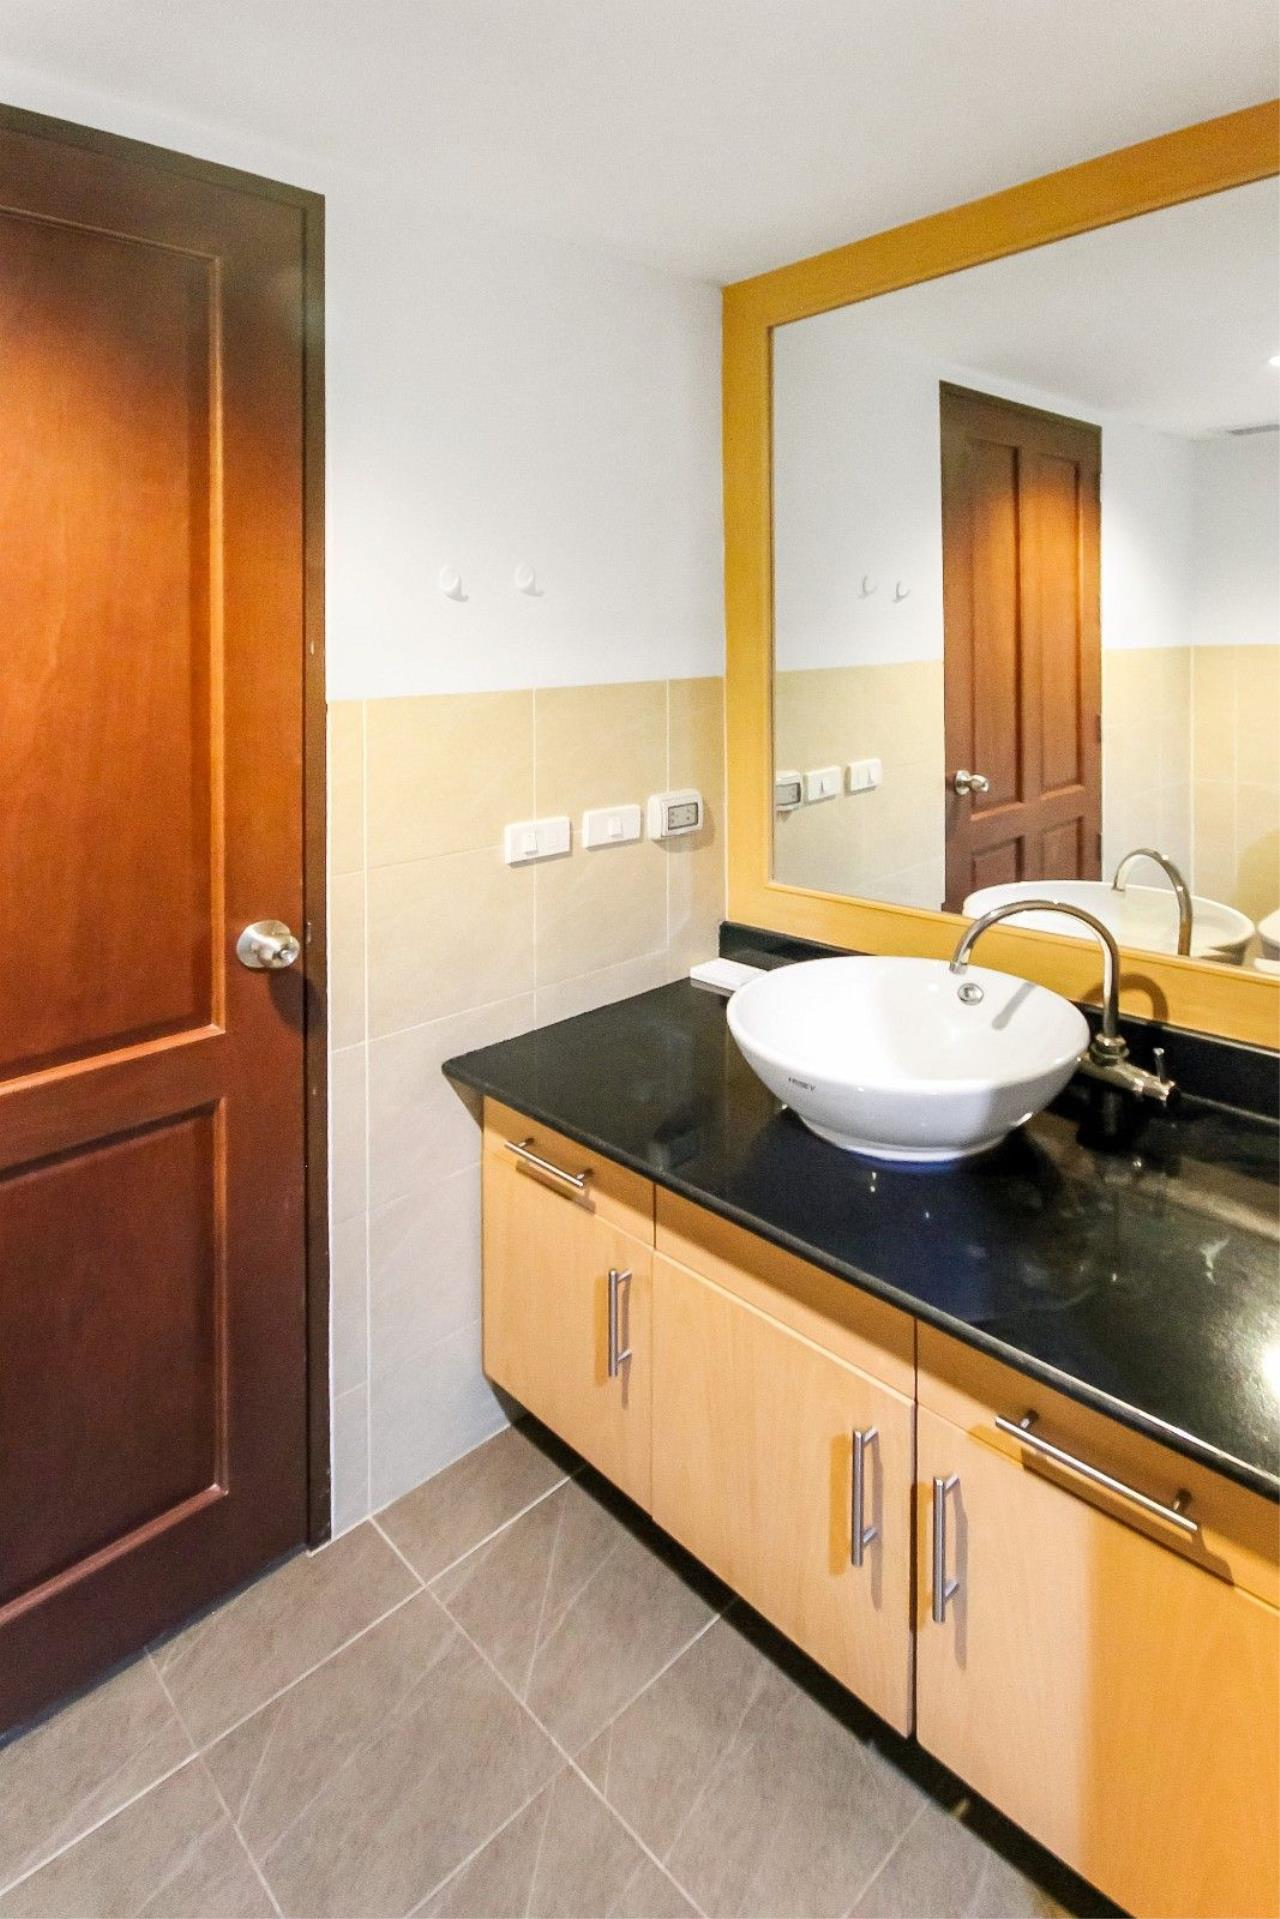 Thaiproperty1 Agency's LUXURIOUS 3 BEDROOM CONDO IN THE SOUTHERN PART OF HUA HIN. 9